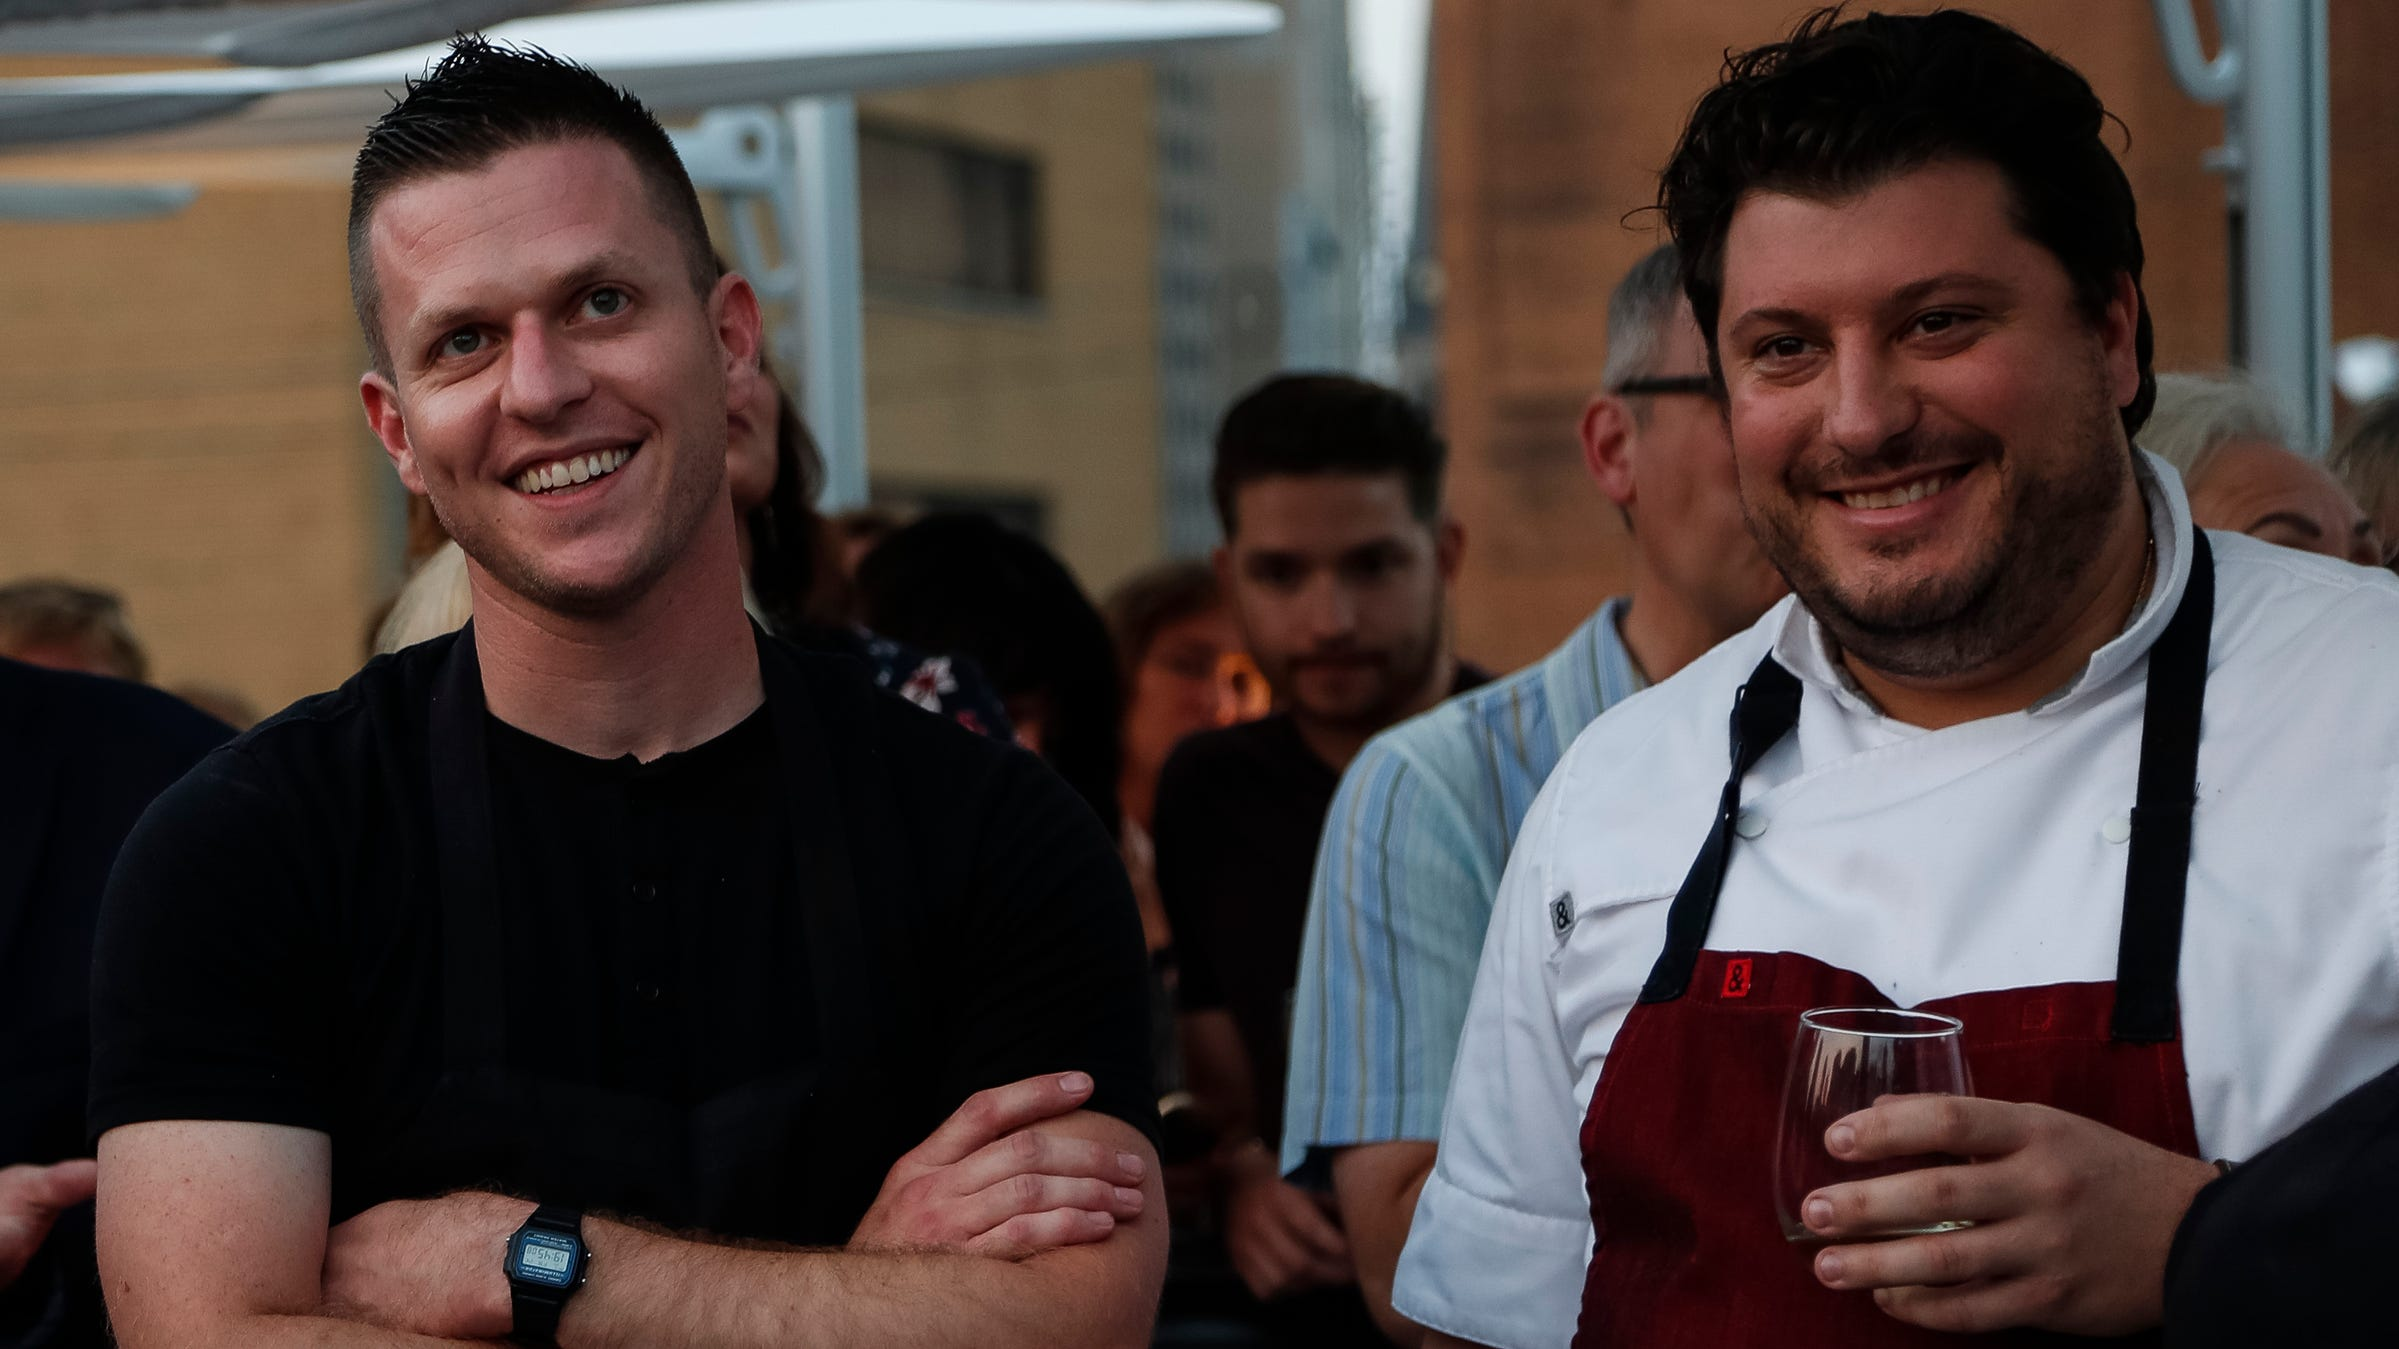 Chef John Vermiglio of Grey Ghost, left, and Anthony Lombardo of SheWolf, were being introduced to guests during the dinner to kick off the Free Press Wine & Food weekend at Lumen in downtown Detroit, Friday, September 14, 2018.